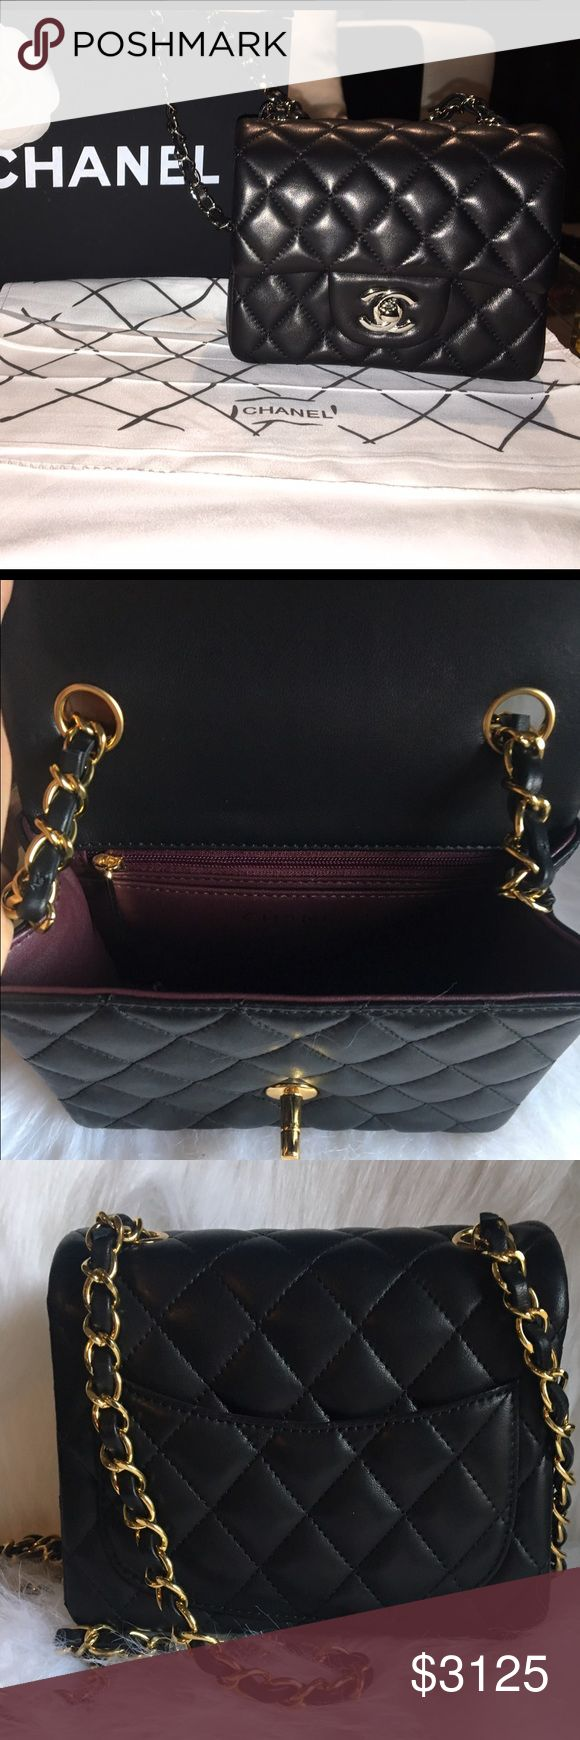 Chanel mini flap bag w quilted lambskin cross body mini Chanel black lambskin purse with silver hardware. interior is maroon leather. this bag is in really good condition. it comes with the dust bag and box. if you have any questions or are interested please ask! I can send more pictures. CHANEL Bags Crossbody Bags